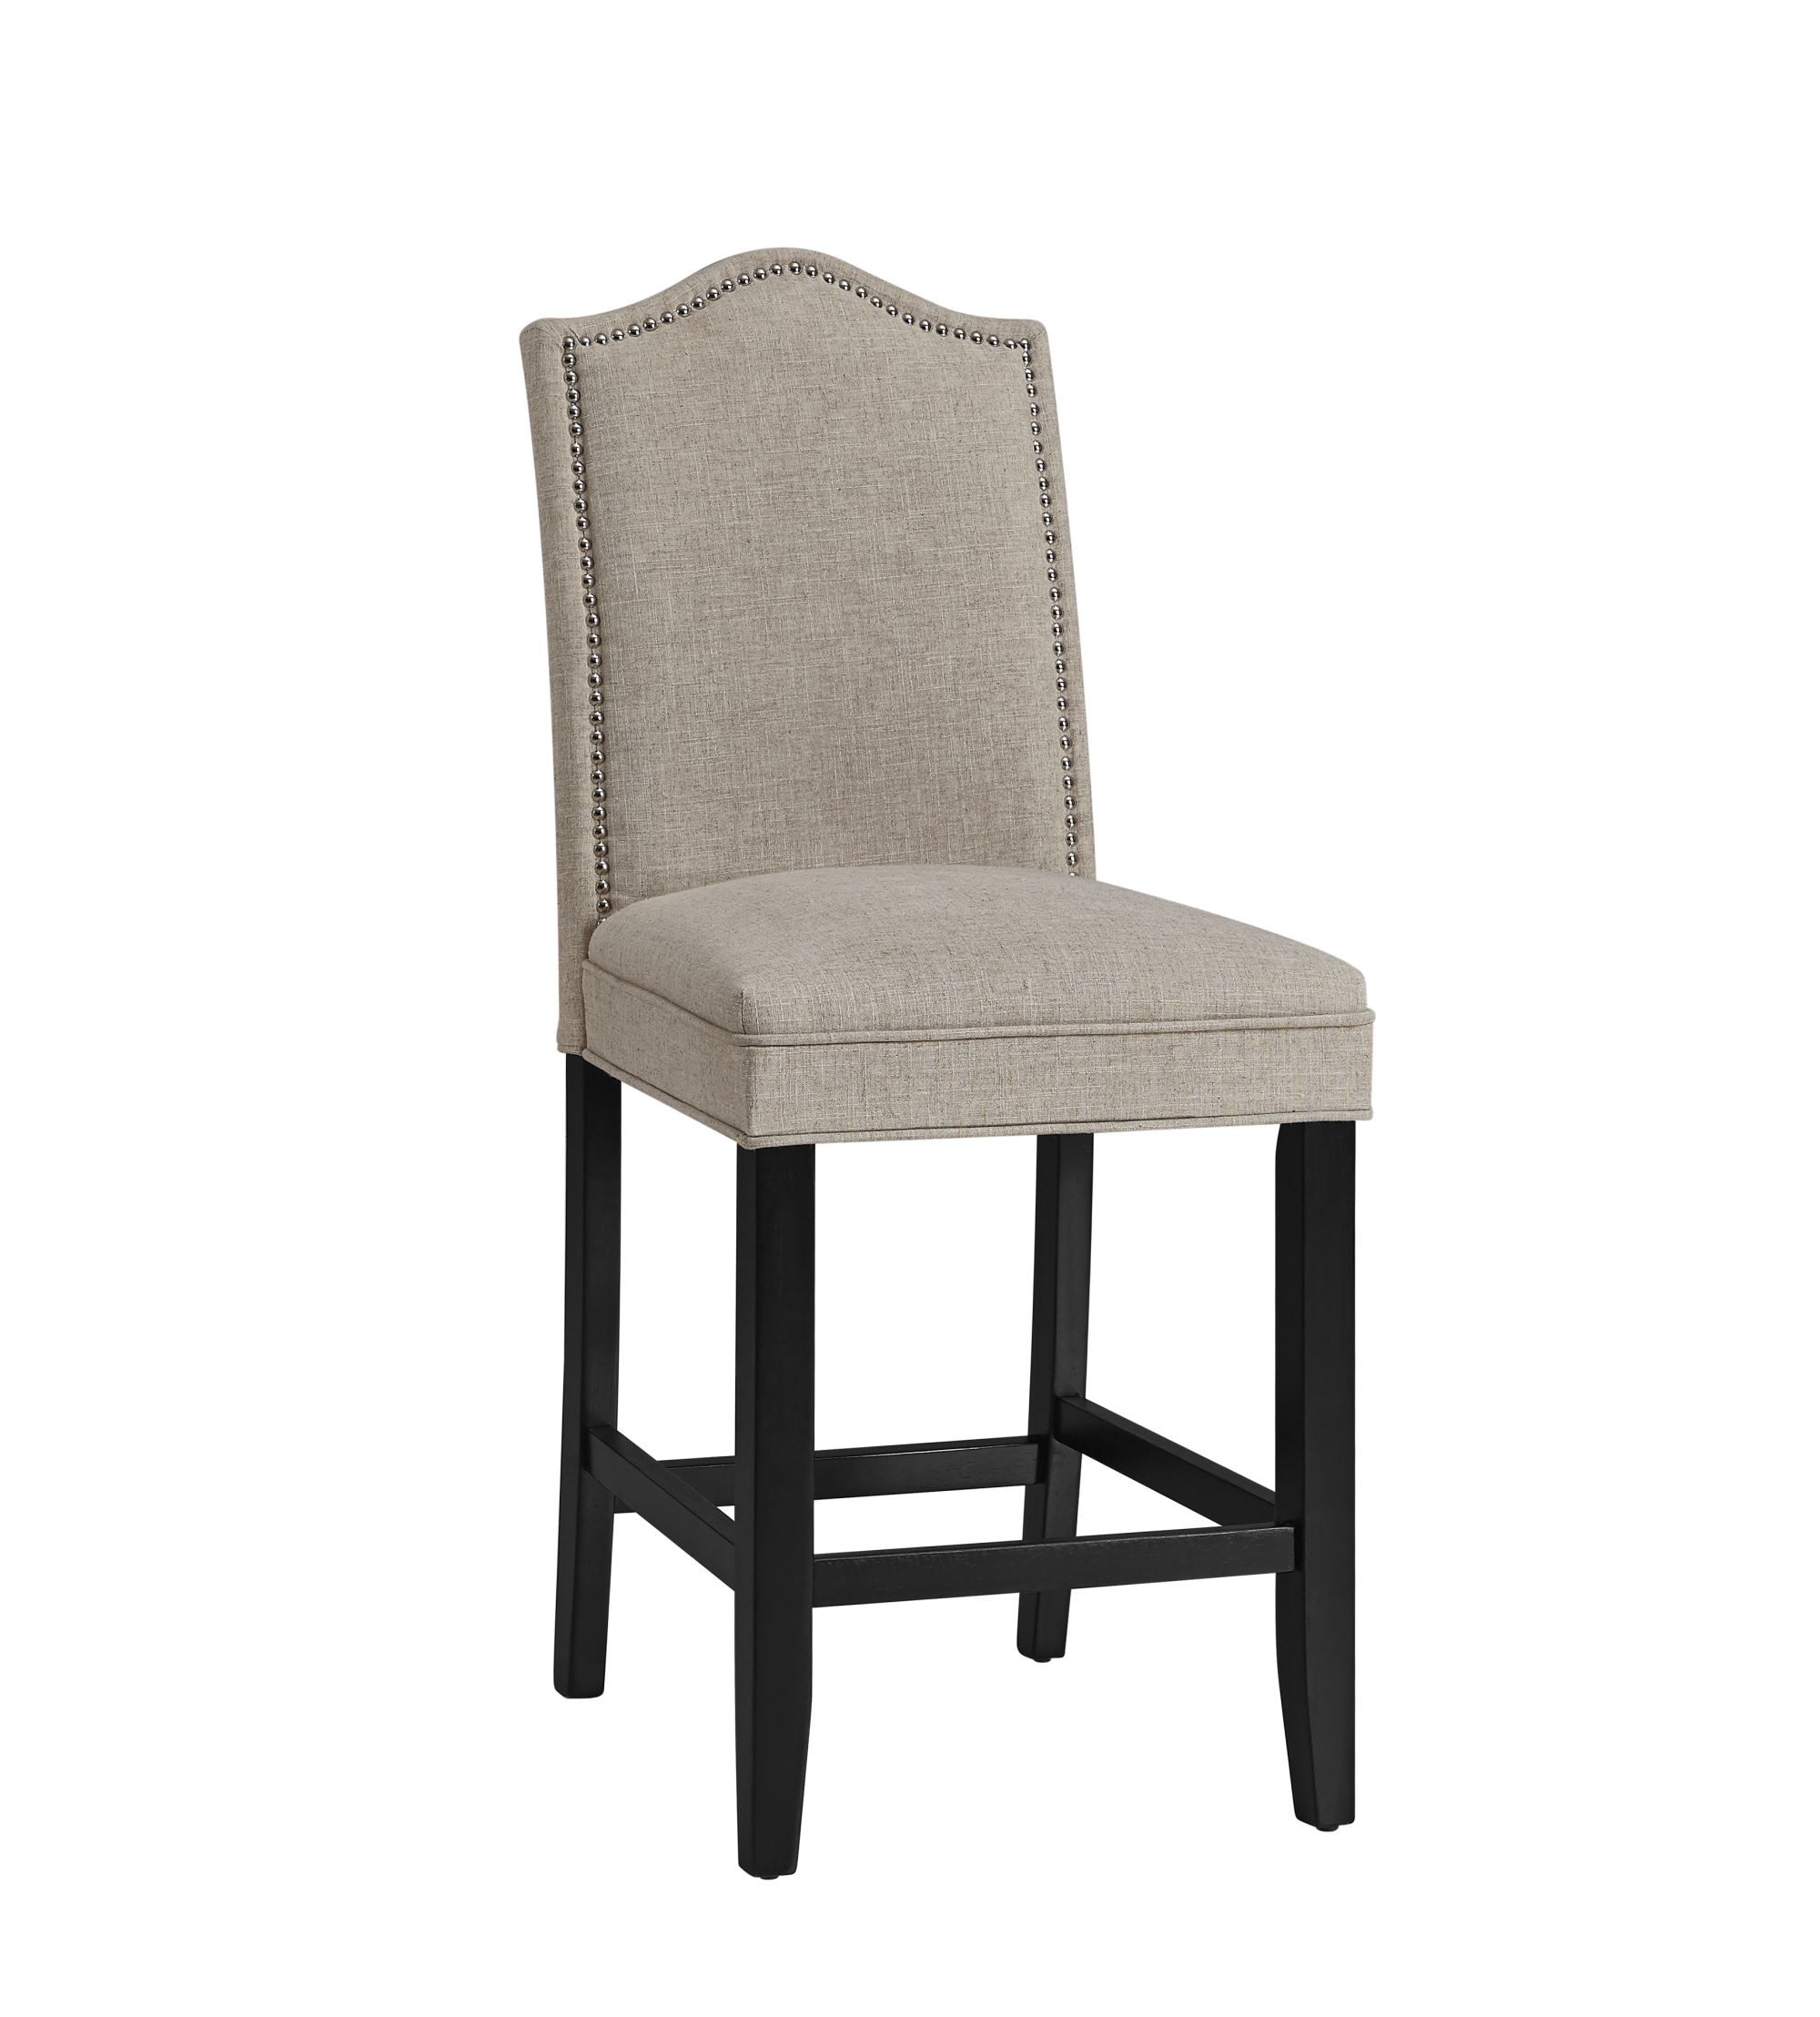 Belgian Luxe Camelback Counter Stool by Bassett Mirror at Alison Craig Home Furnishings